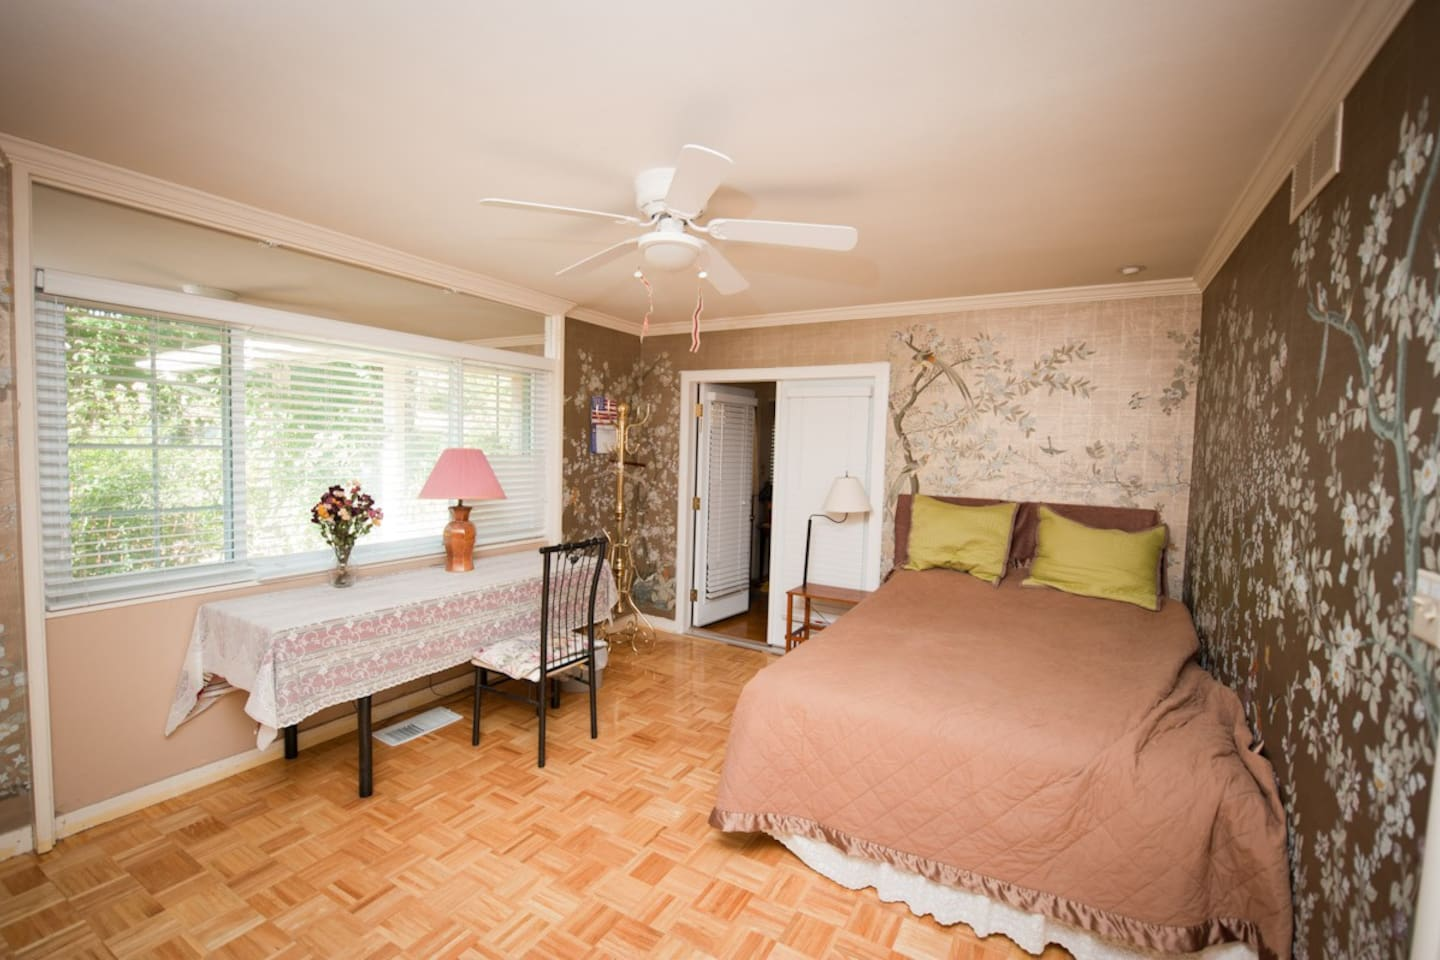 This main guest room has a queen size bed, a desk, and a small vanity table.  Through the big windows, you can see lots of flowers outside. This room is adjacent to a big living room and separated by a big panel which is totally closed from the host's quarter, very private.